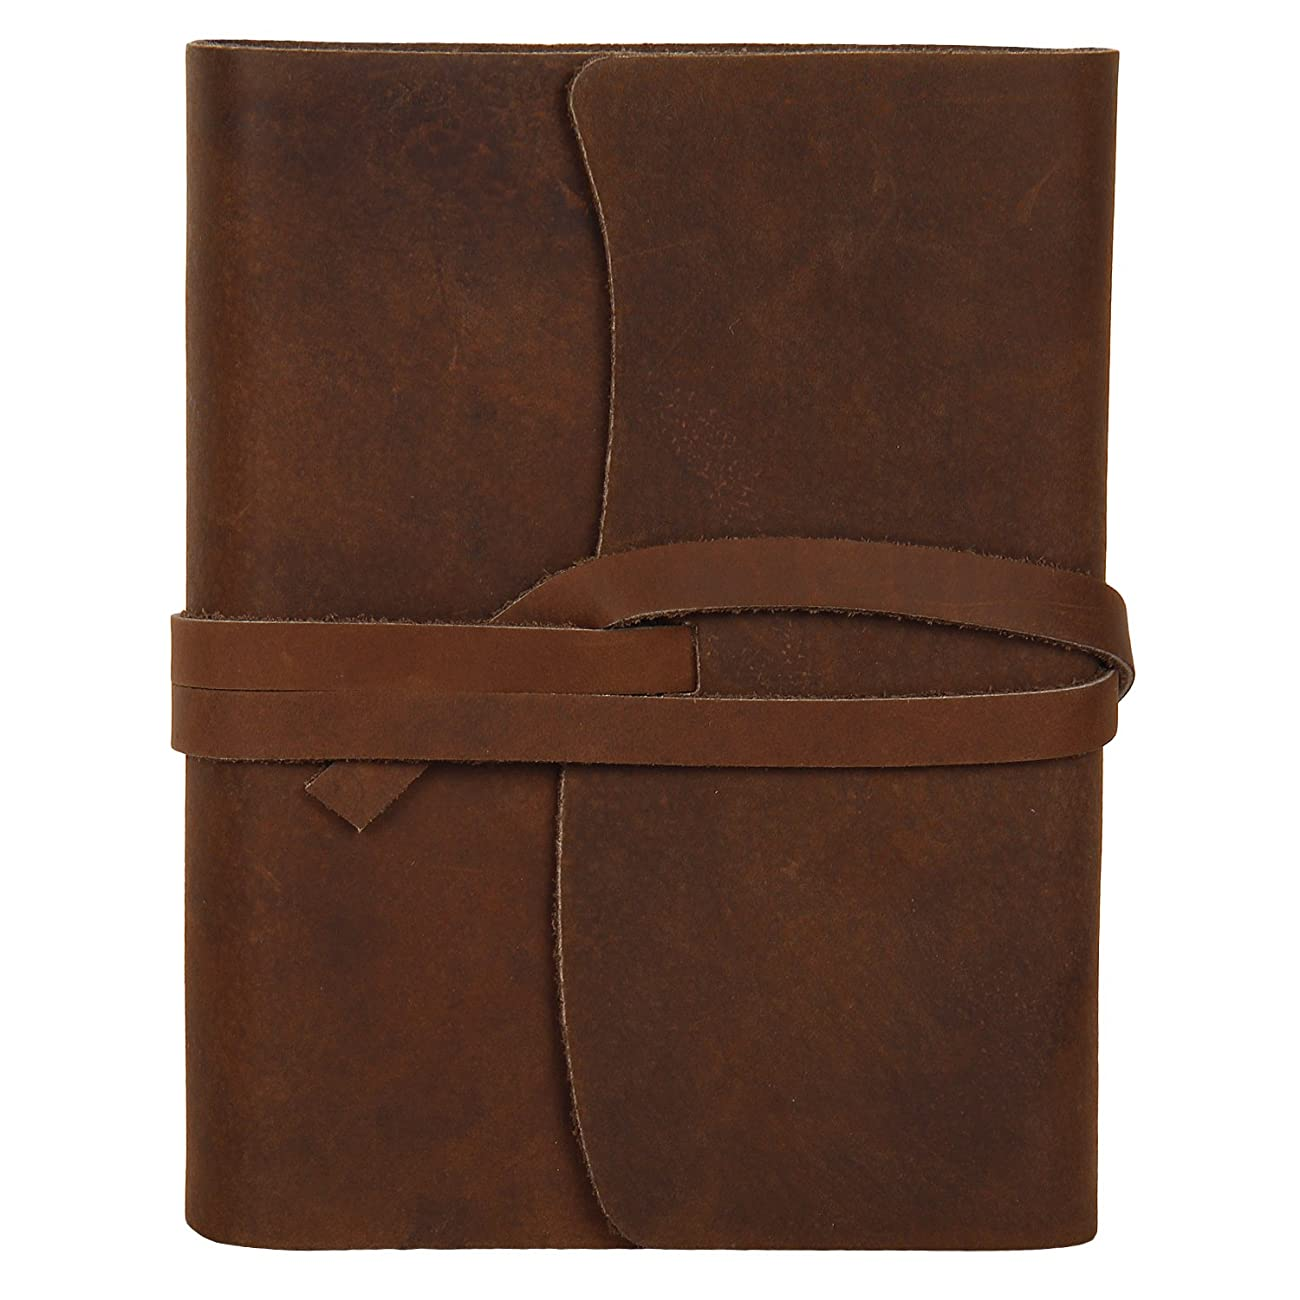 Handmade Medium Vintage Leather Journal Diary 1